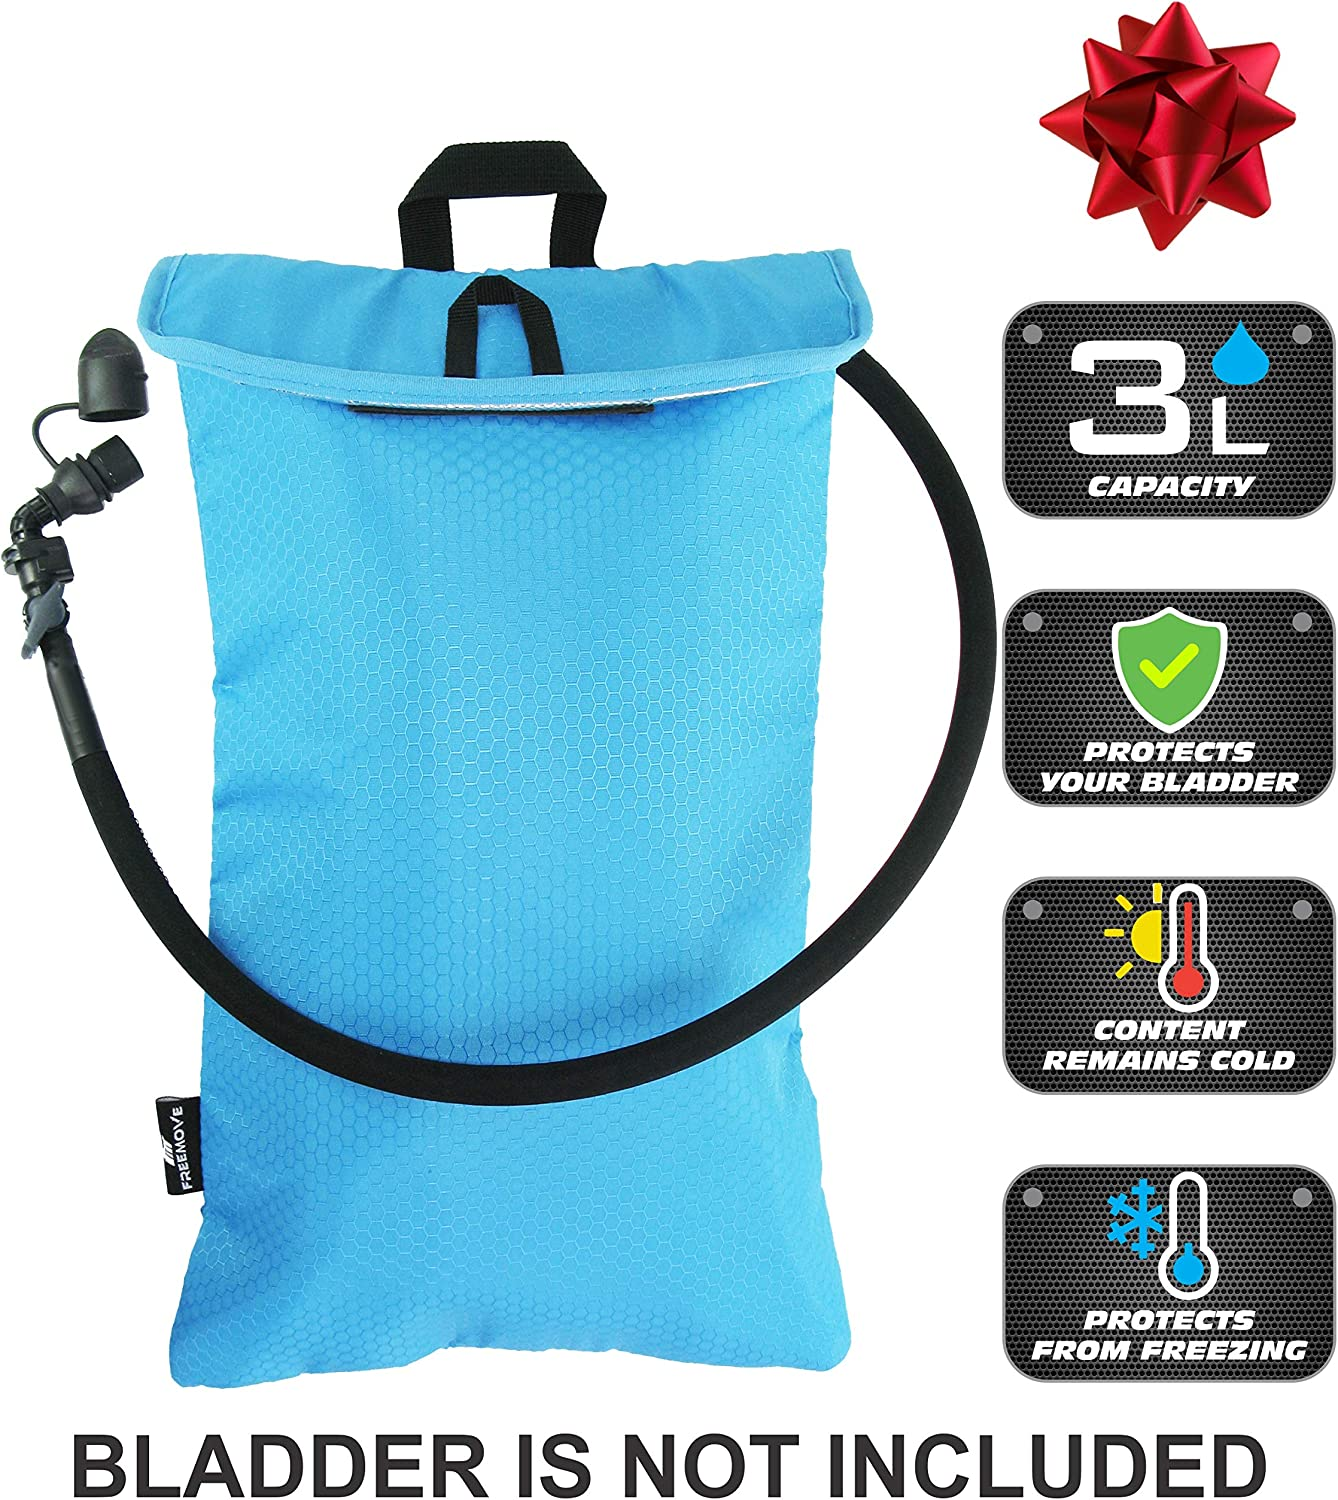 FREEMOVE Cooler Bag & Protective Sleeve for 2L or 3L Hydration Water Bladder | Keeps Water Cool & Protects The Bladder | Lightweight & Water Resistant | Bladder is NOT Included